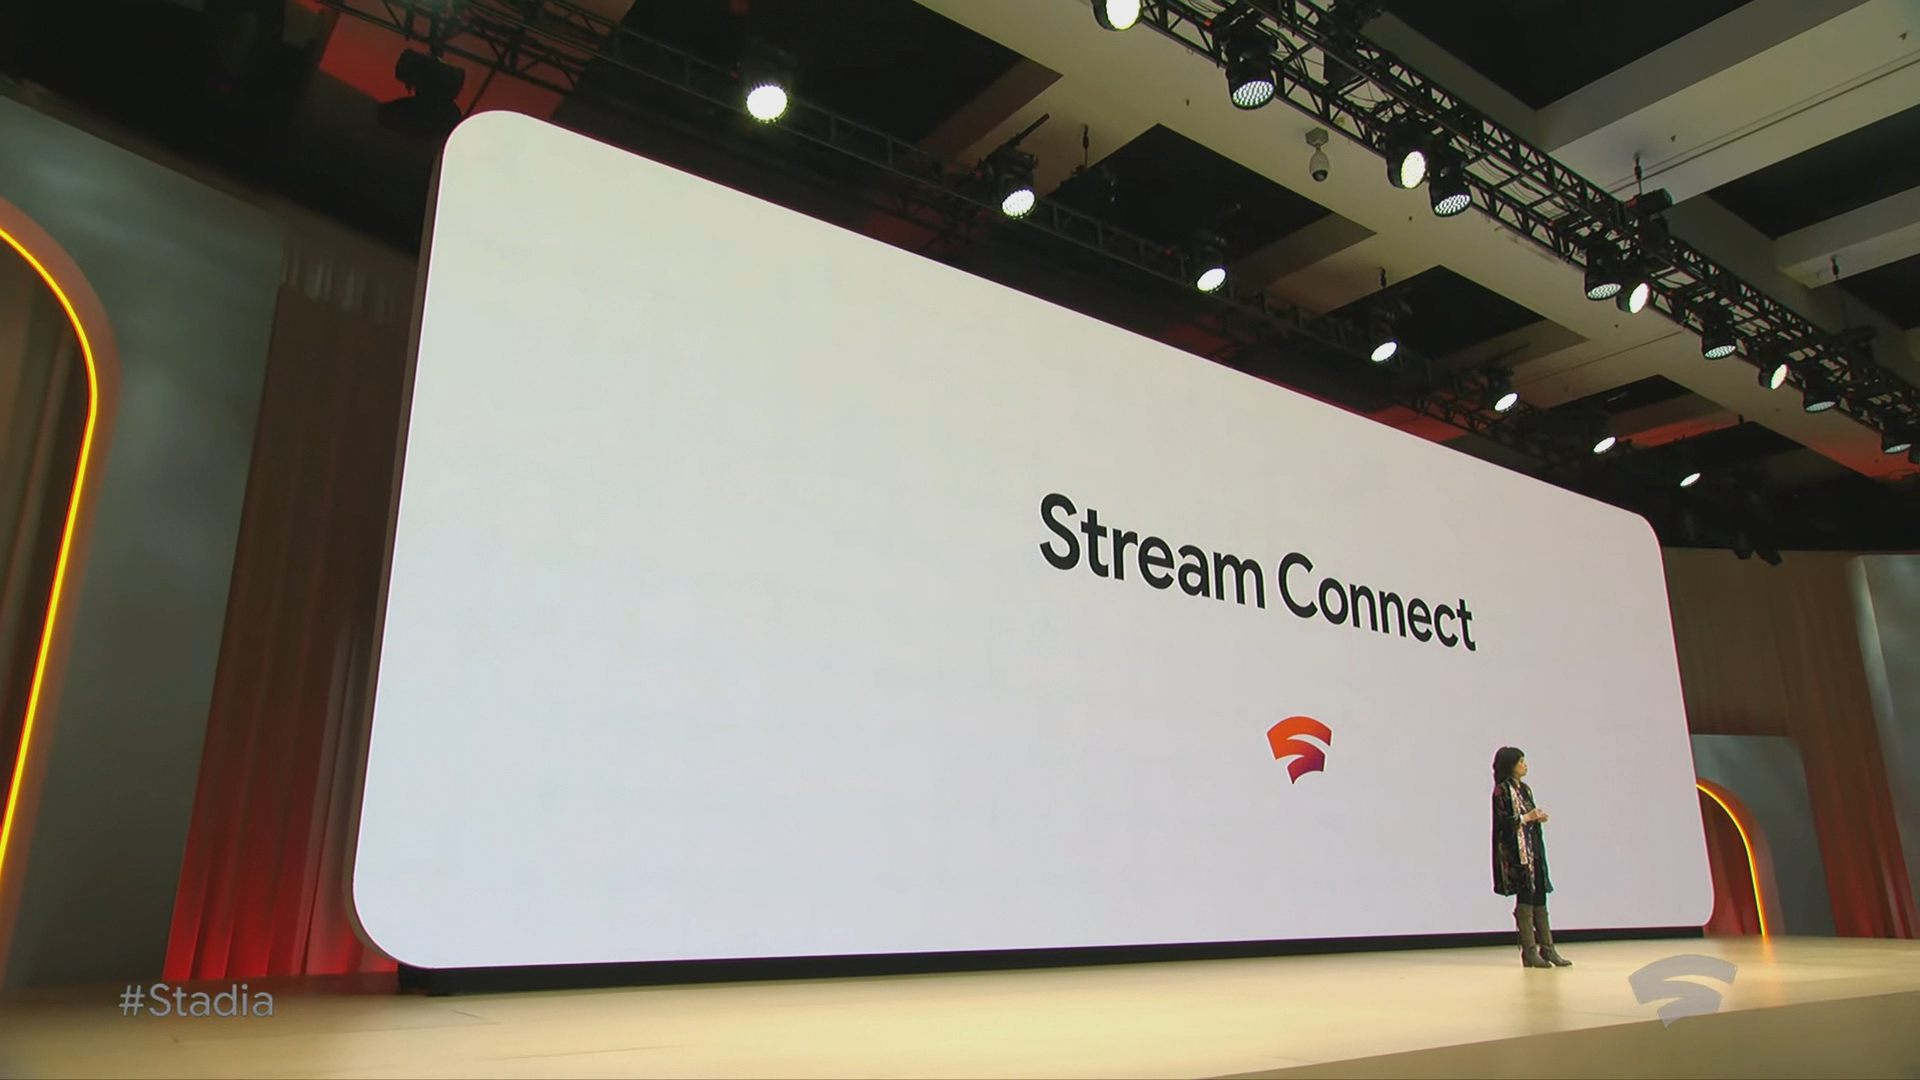 Google Stadia Stream Connect multiplayer couch co-op gaming